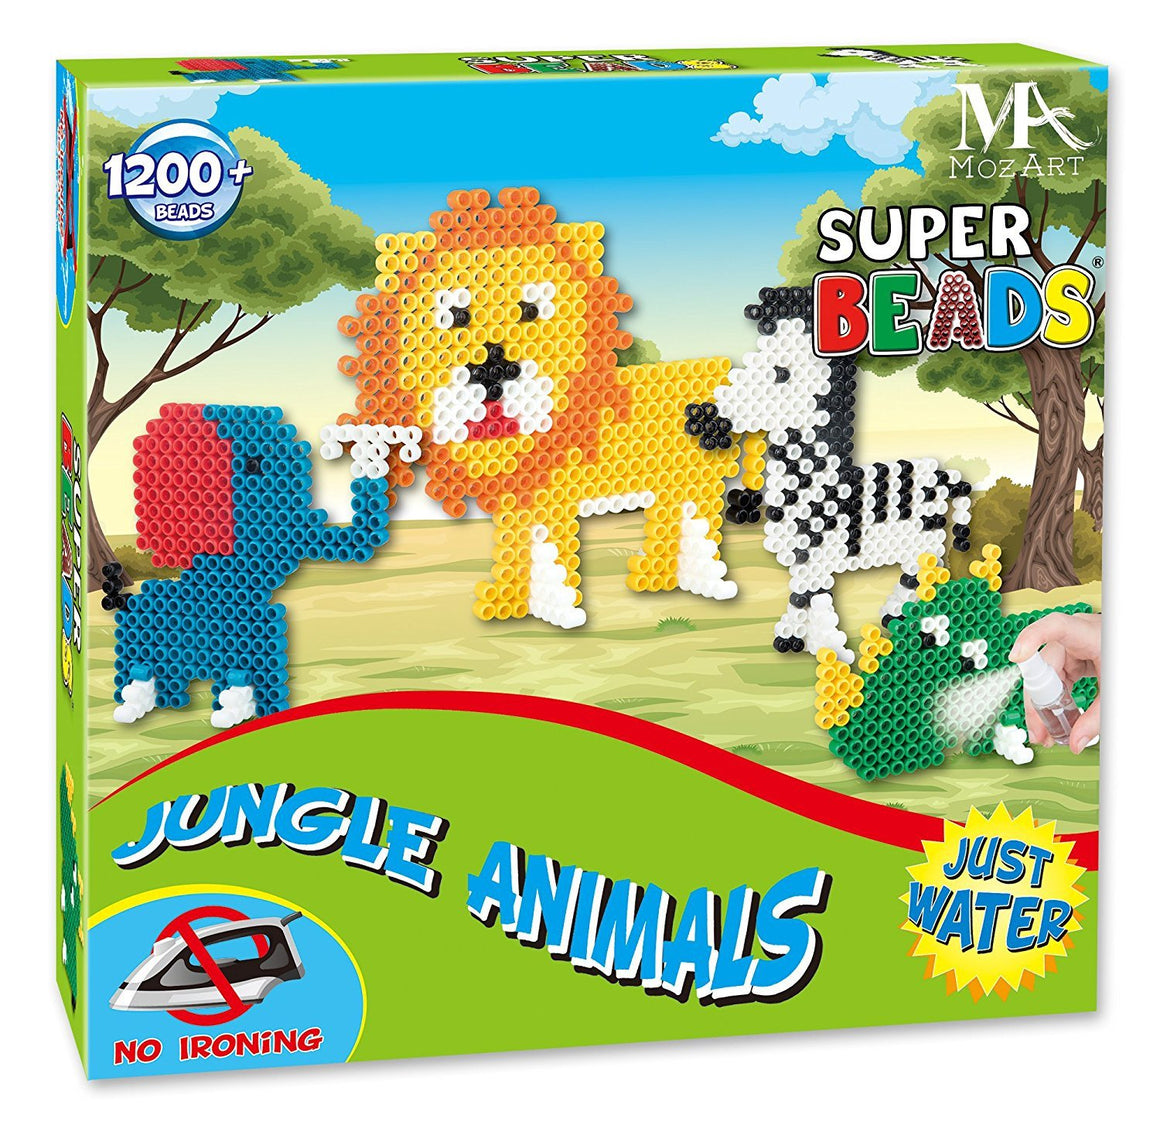 Super Bead Play Set - Jungle edition